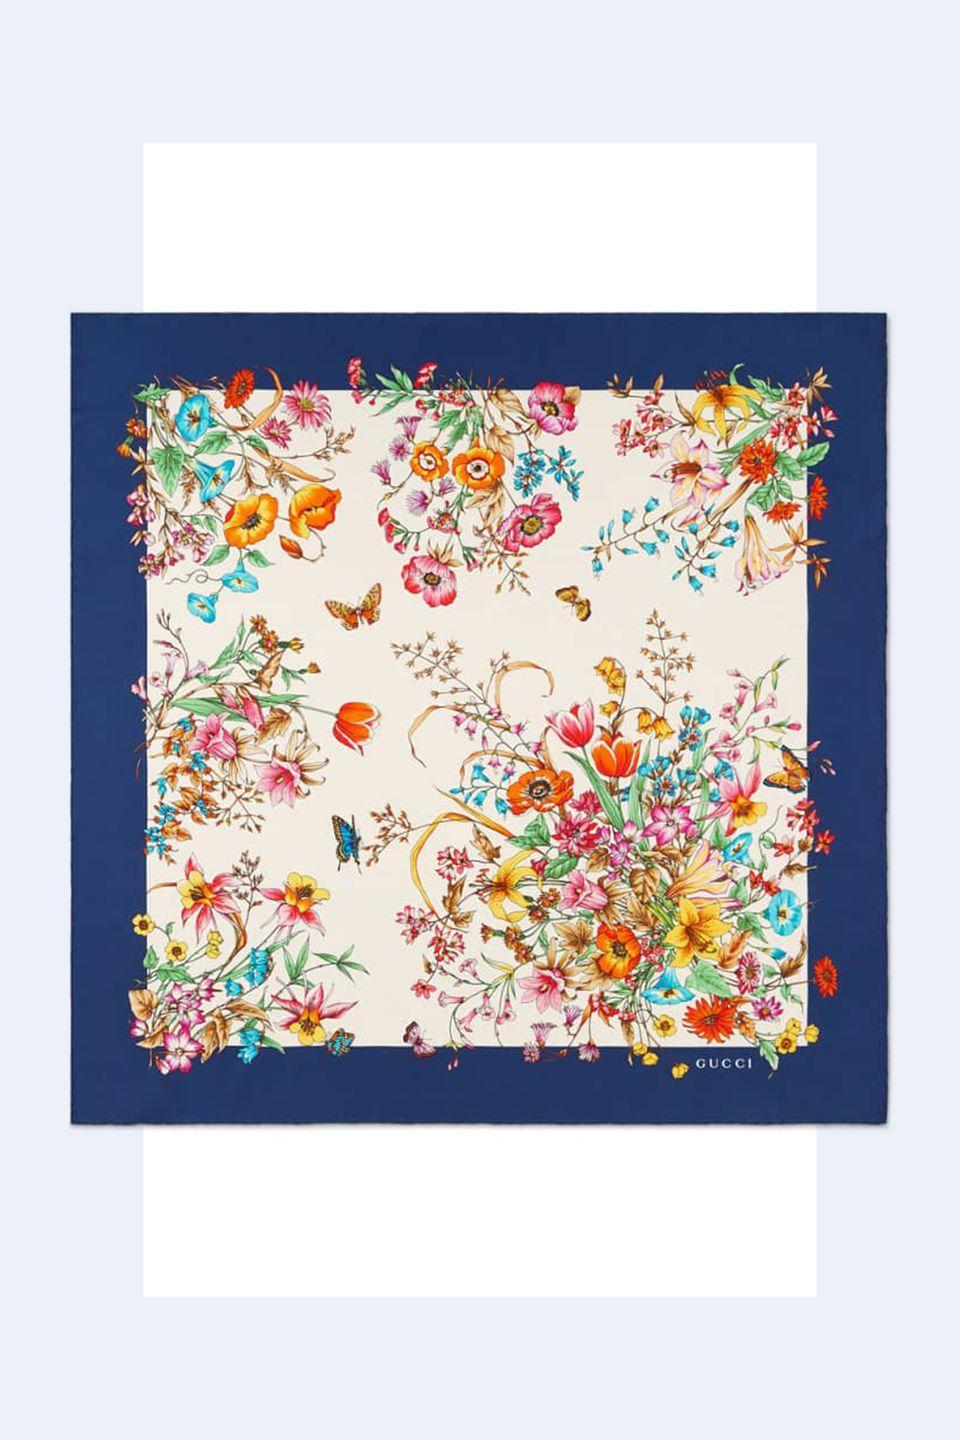 """<p><a rel=""""nofollow noopener"""" href=""""https://shop.nordstrom.com/s/gucci-eighties-bouquet-silk-scarf/5022839?origin=keywordsearch-personalizedsort&breadcrumb=Home%2FAll%20Results&color=navy%2F%20ivory"""" target=""""_blank"""" data-ylk=""""slk:SHOP NOW"""" class=""""link rapid-noclick-resp"""">SHOP NOW</a> <em>Gucci Silk Scarf, $495</em></p><p>""""A scarf is extremely multi-purpose. A <strong>silk scarf</strong> can be tied at the neck or draped over your shoulders in the evening."""" -<em><a rel=""""nofollow noopener"""" href=""""http://theonly.agency/negar-ali-kline"""" target=""""_blank"""" data-ylk=""""slk:Negar Ali Kline"""" class=""""link rapid-noclick-resp"""">Negar Ali Kline</a></em></p>"""